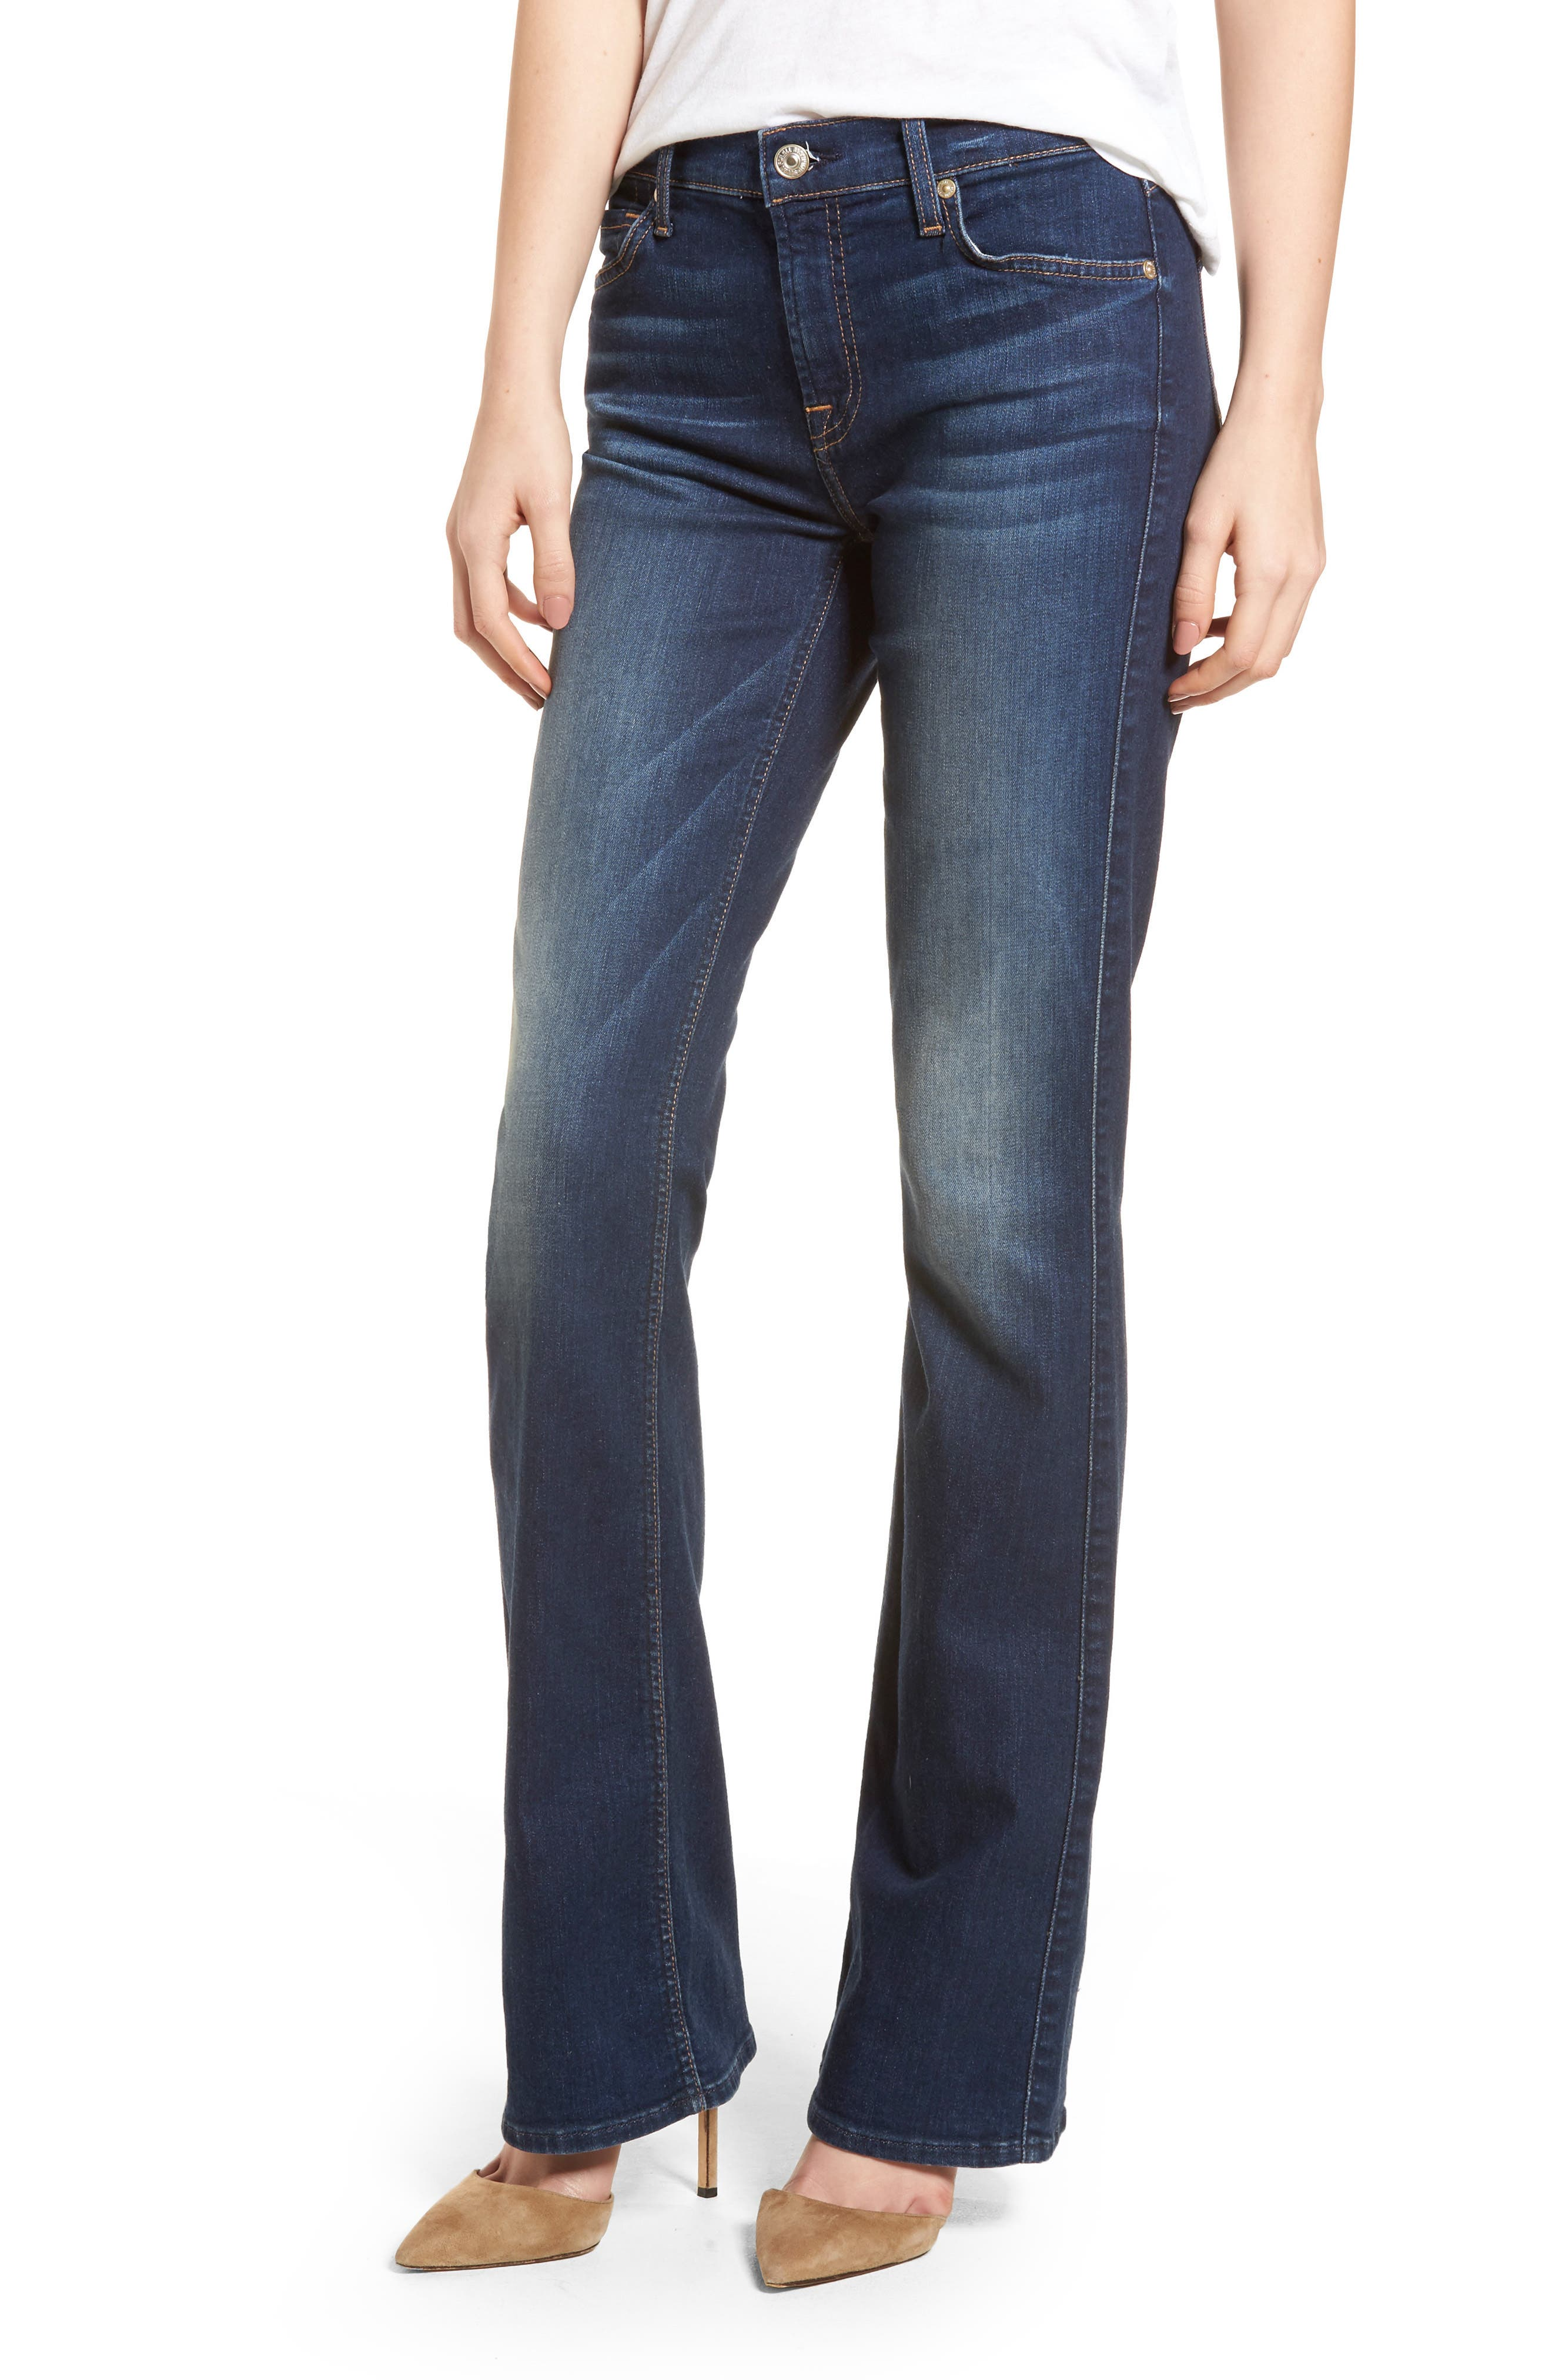 b(air) Iconic Bootcut Jeans,                         Main,                         color, MORENO